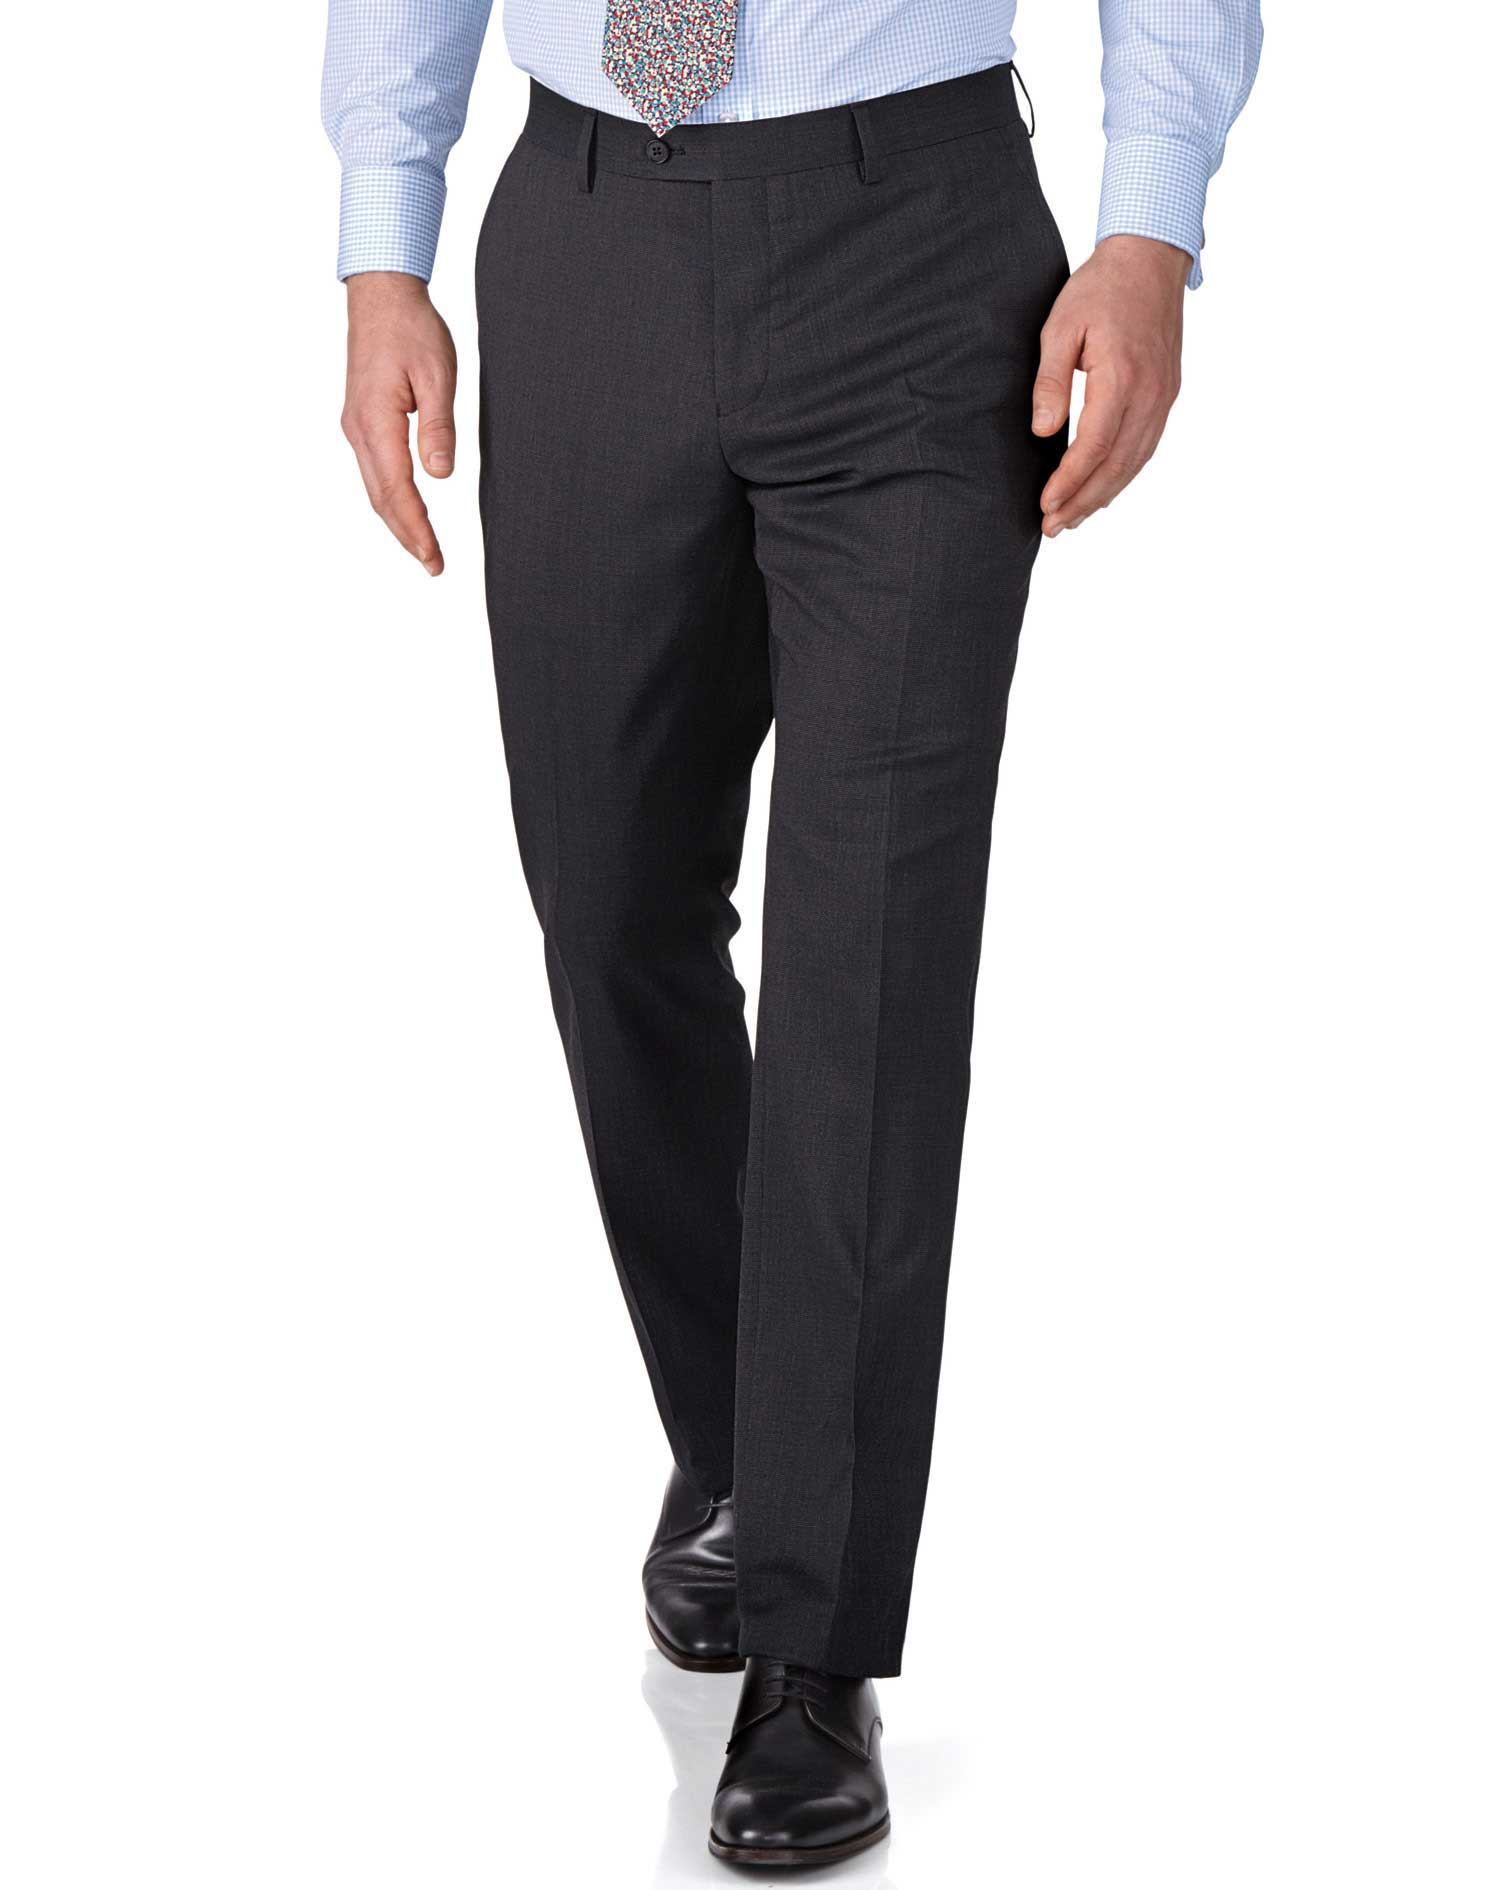 Charcoal Slim Fit End-On-End Business Suit Trousers Size W38 L32 by Charles Tyrwhitt